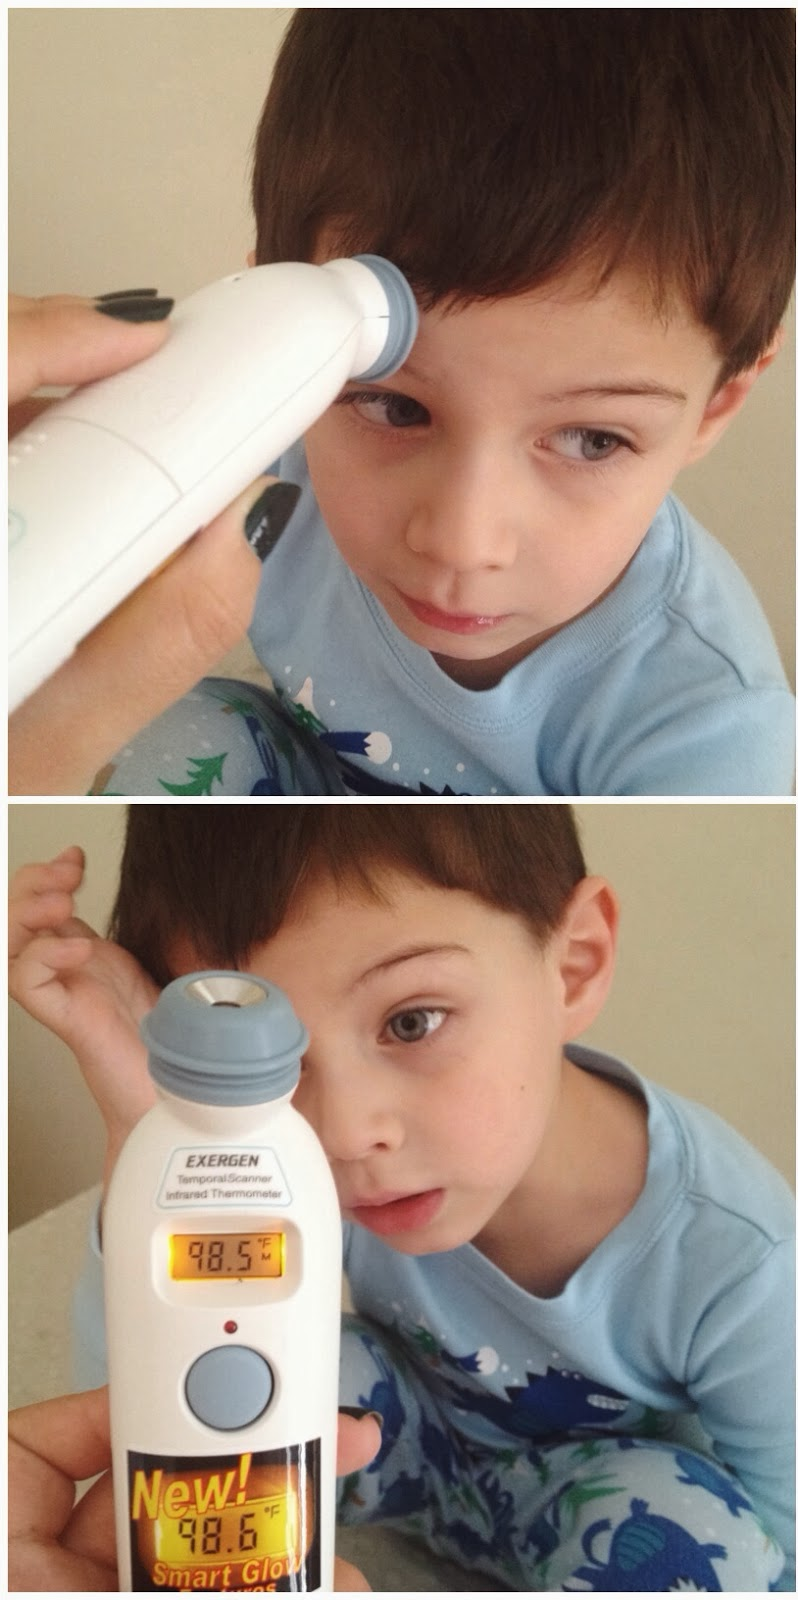 Hello Jack Blog: Exergen Temporal Thermometer